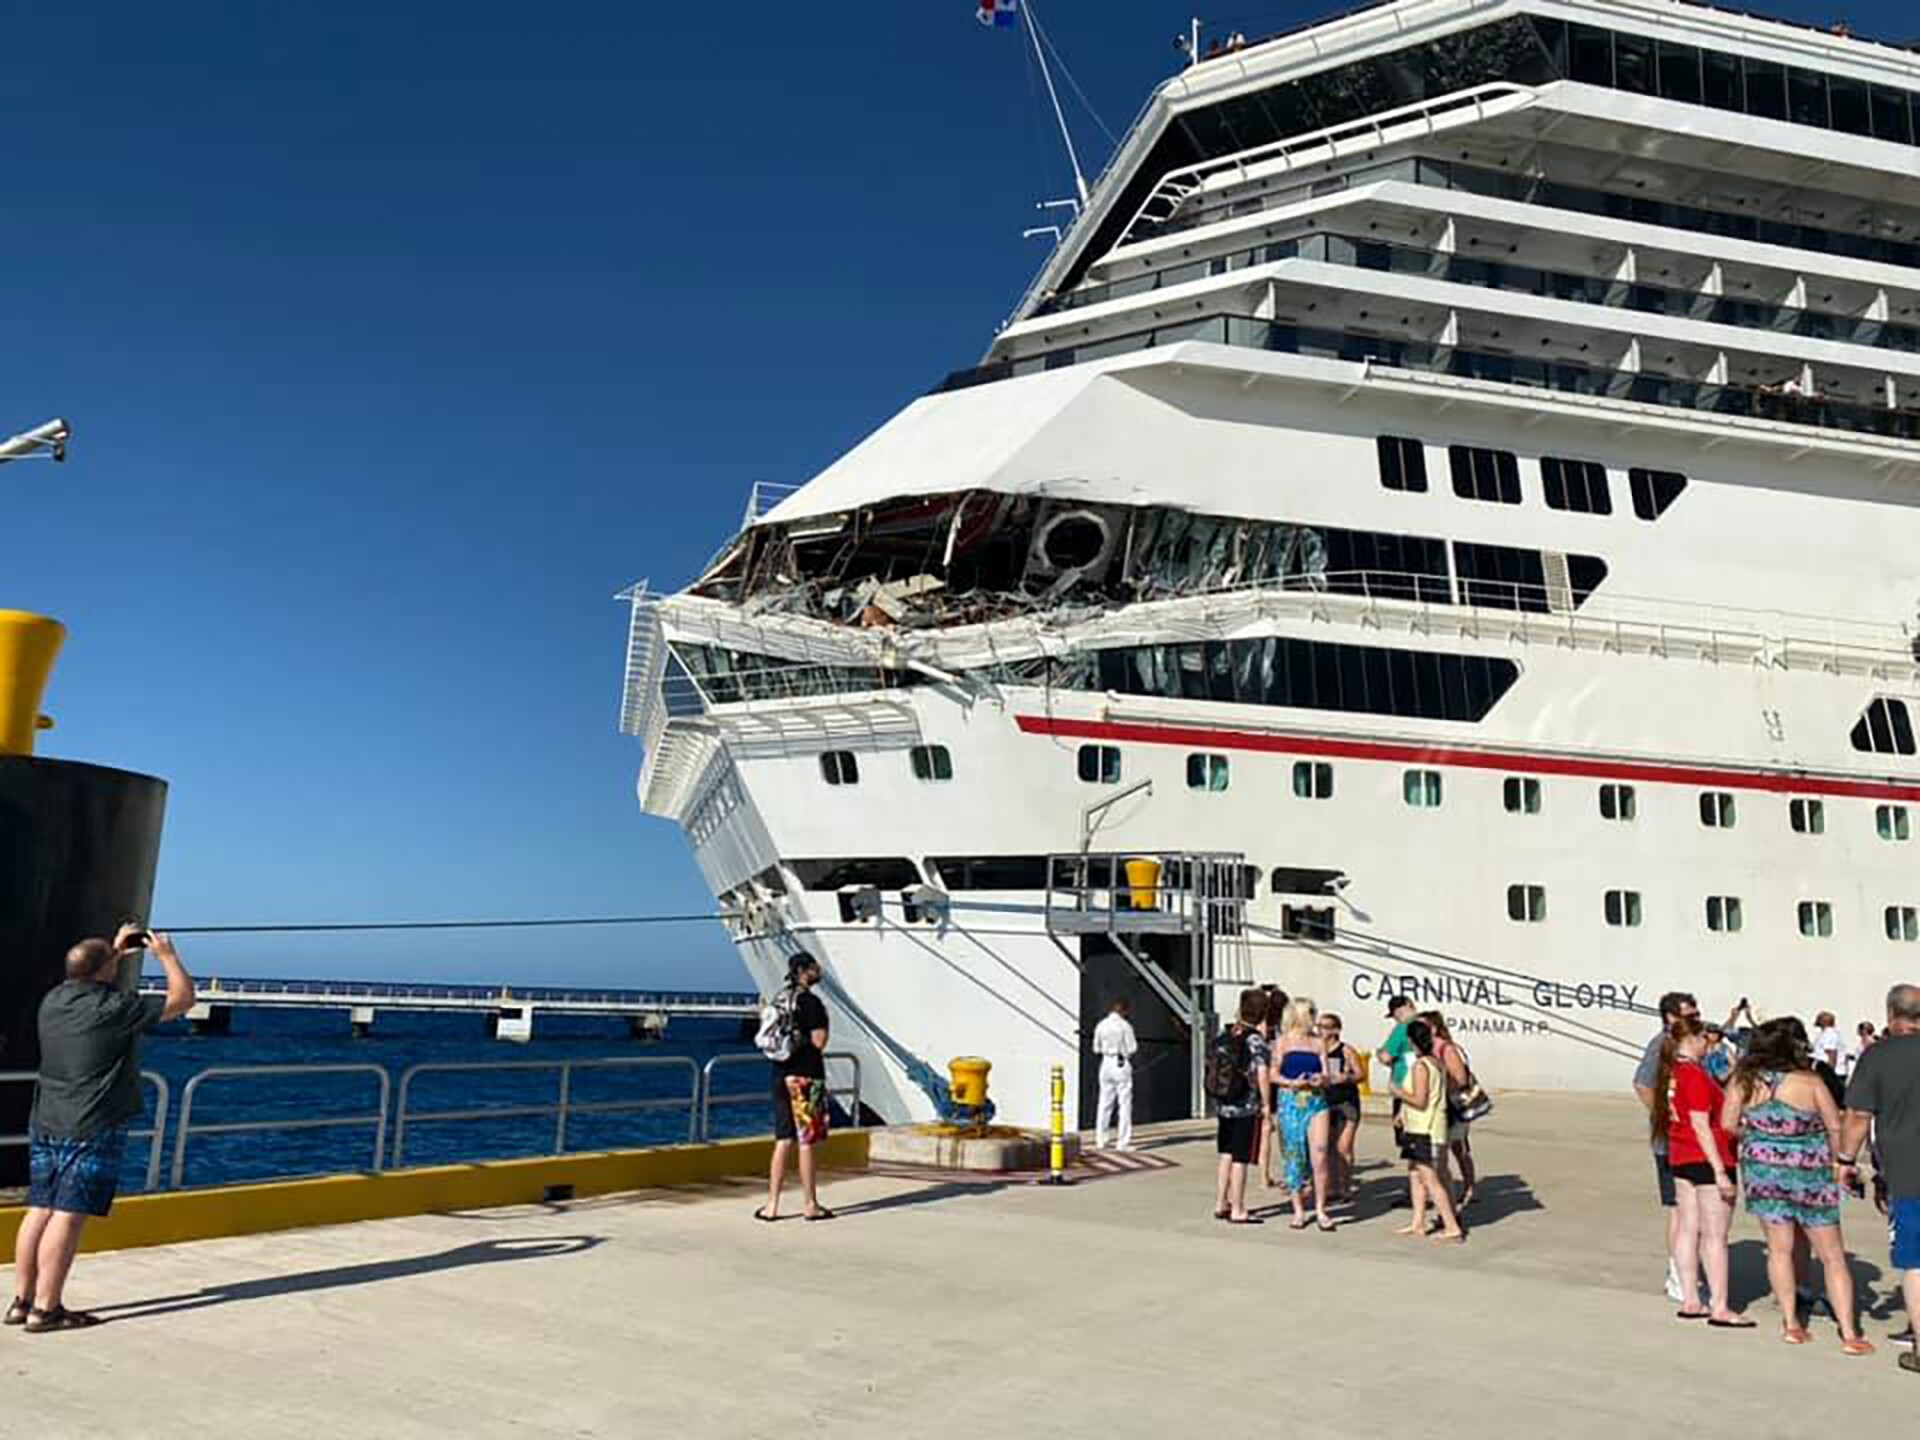 Photos: Six people injured after two Carnival cruise ships collide in Cozumel,Mexico